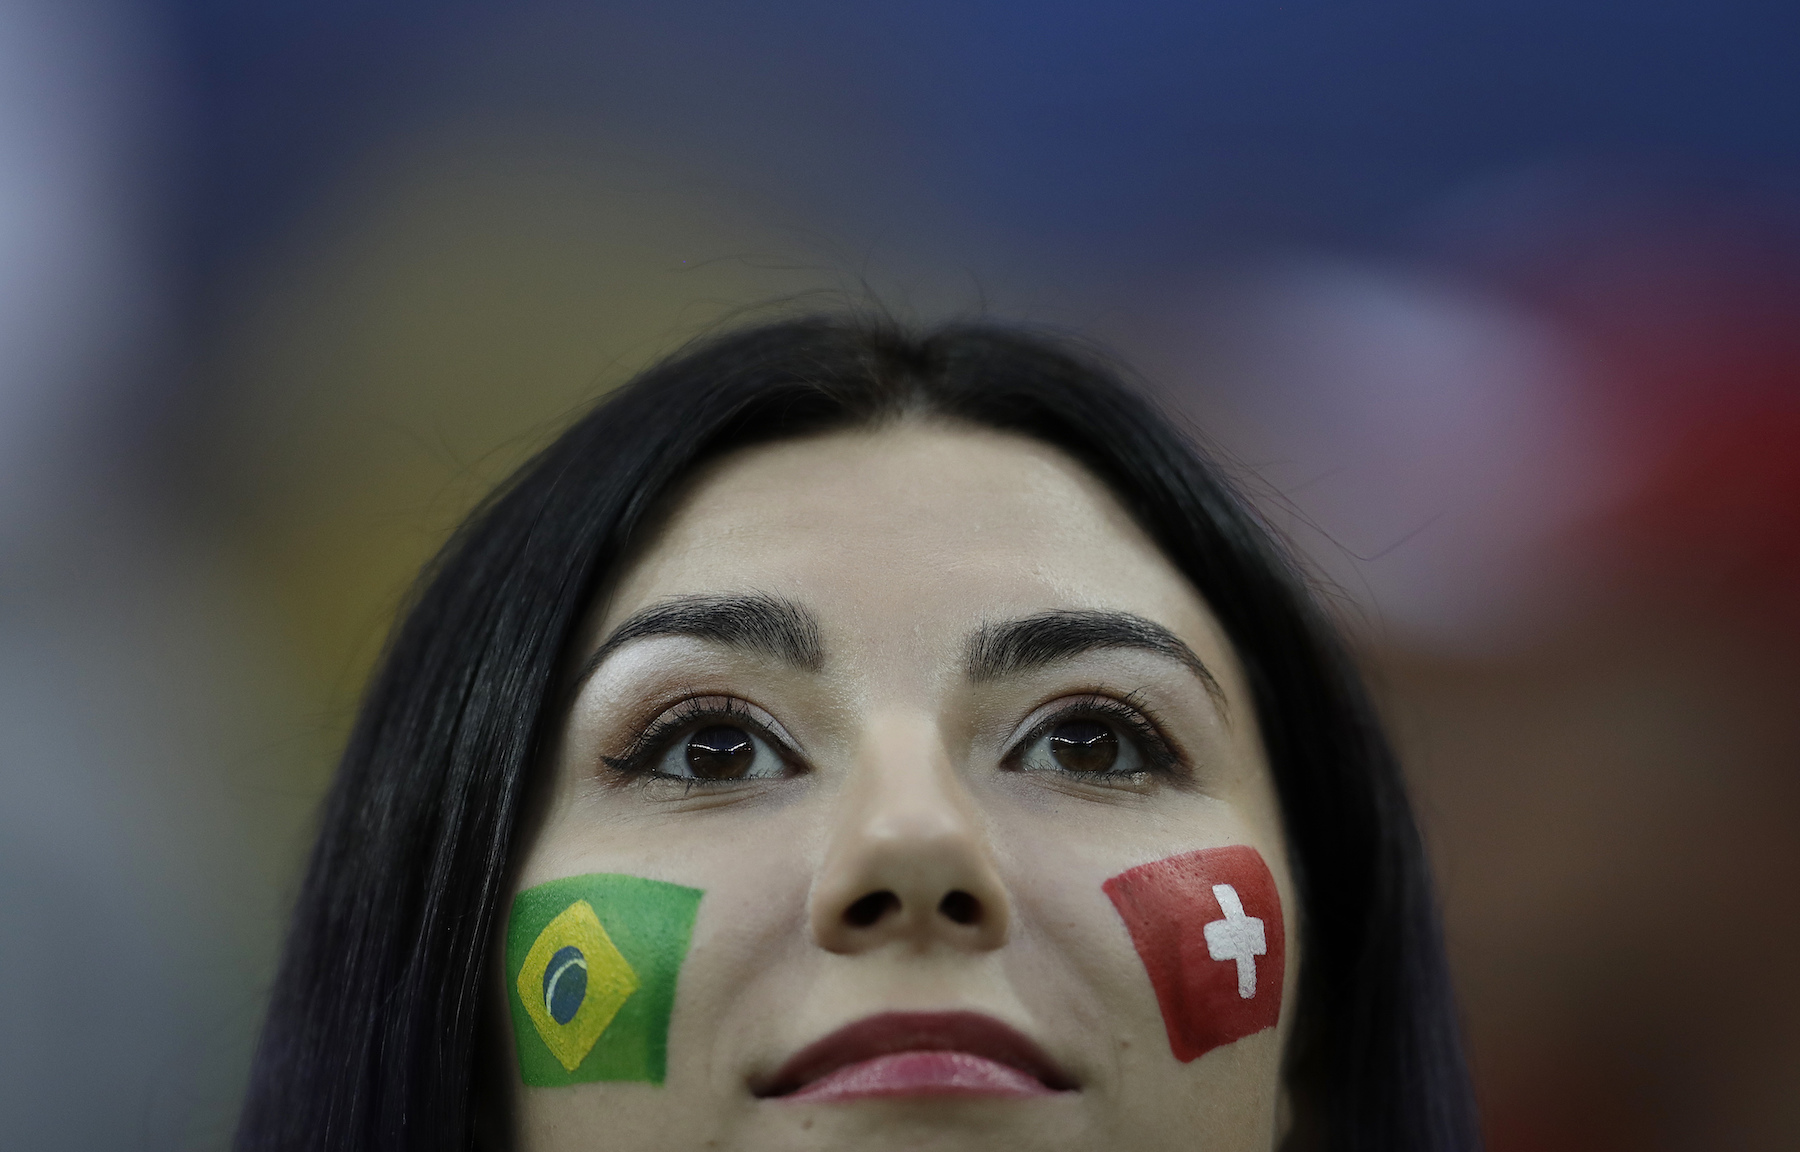 "<div class=""meta image-caption""><div class=""origin-logo origin-image ap""><span>AP</span></div><span class=""caption-text"">A soccer supporter show flags painted on her cheeks during the group E match between Brazil and Switzerland at the 2018 soccer World Cup in the Rostov Arena. (AP Photo/Felipe Dana)</span></div>"